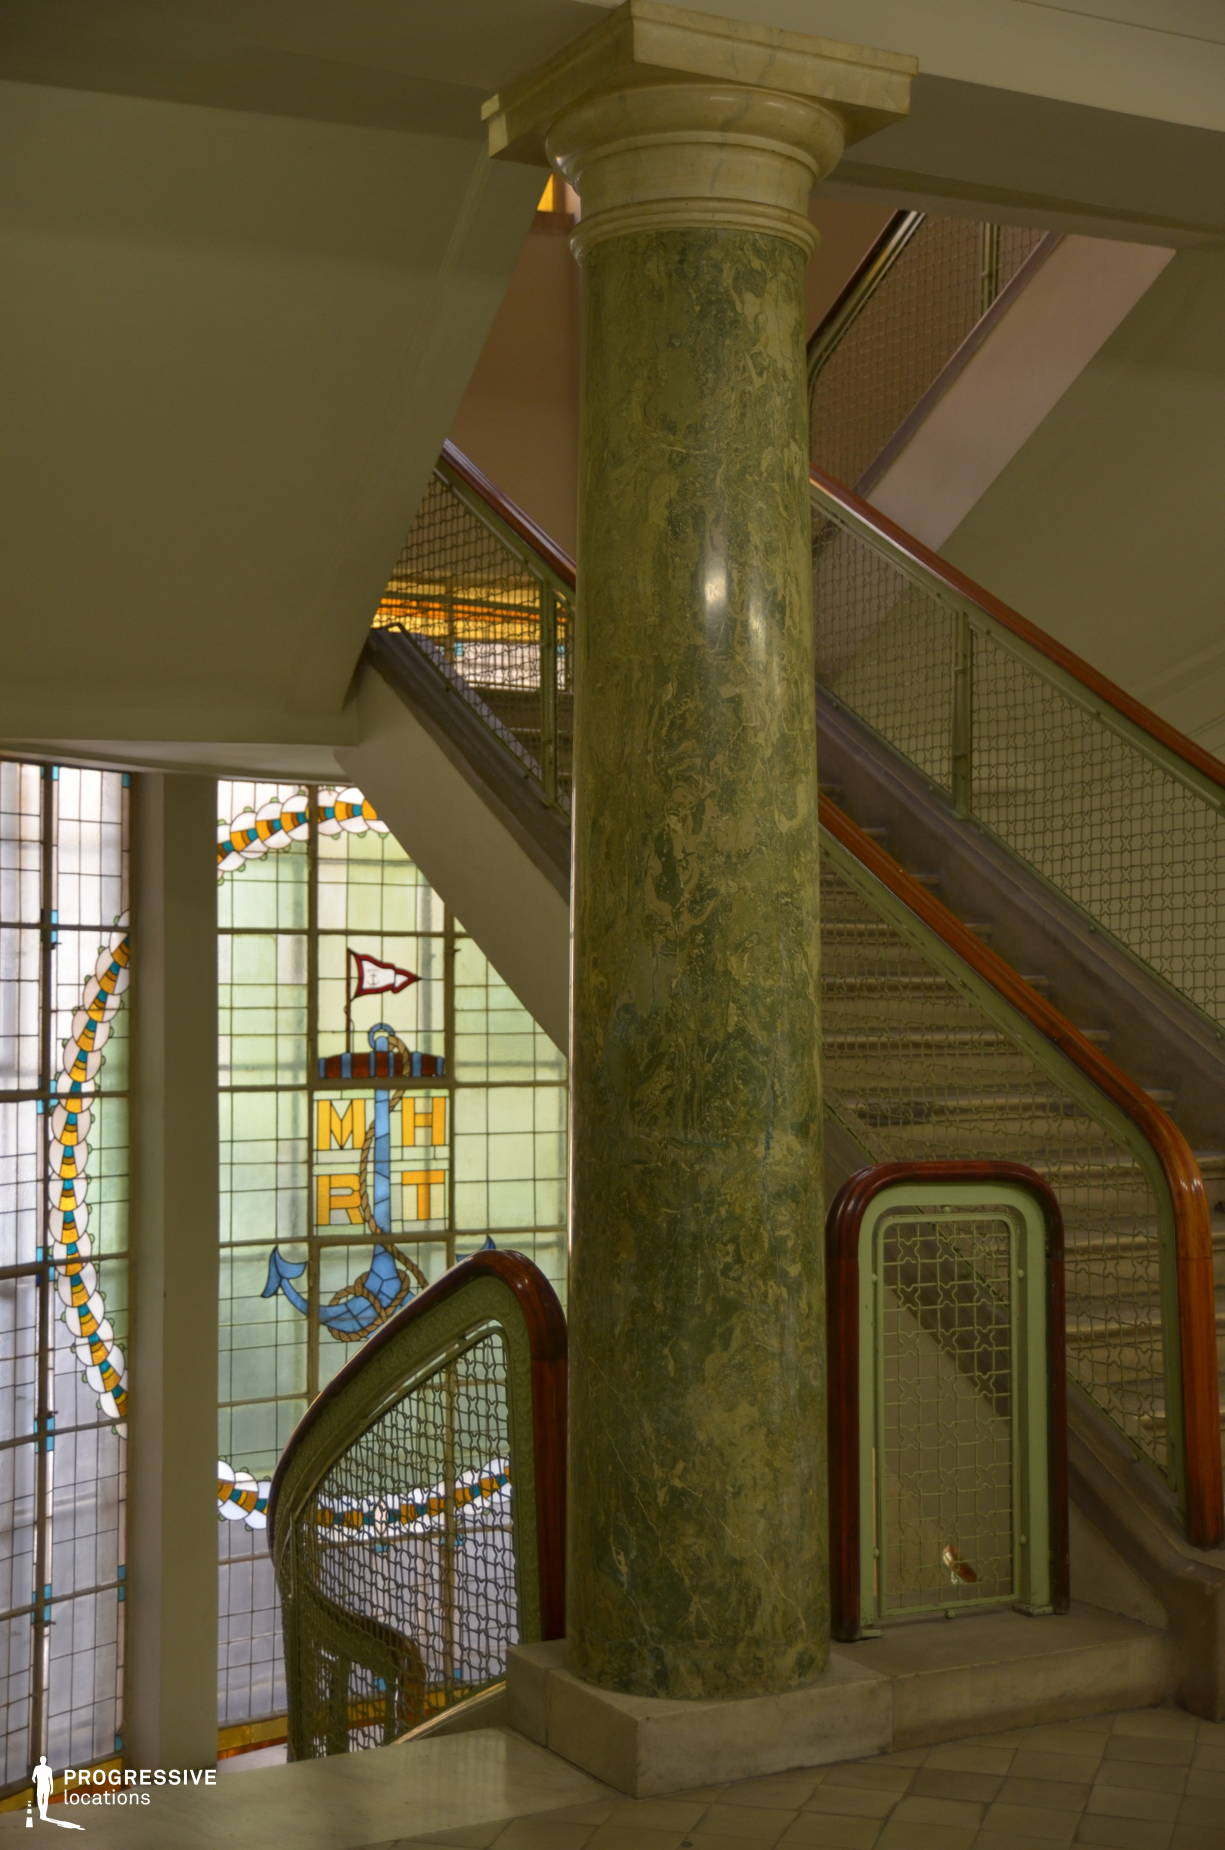 Locations in Budapest: River Shipping Company, Staircase